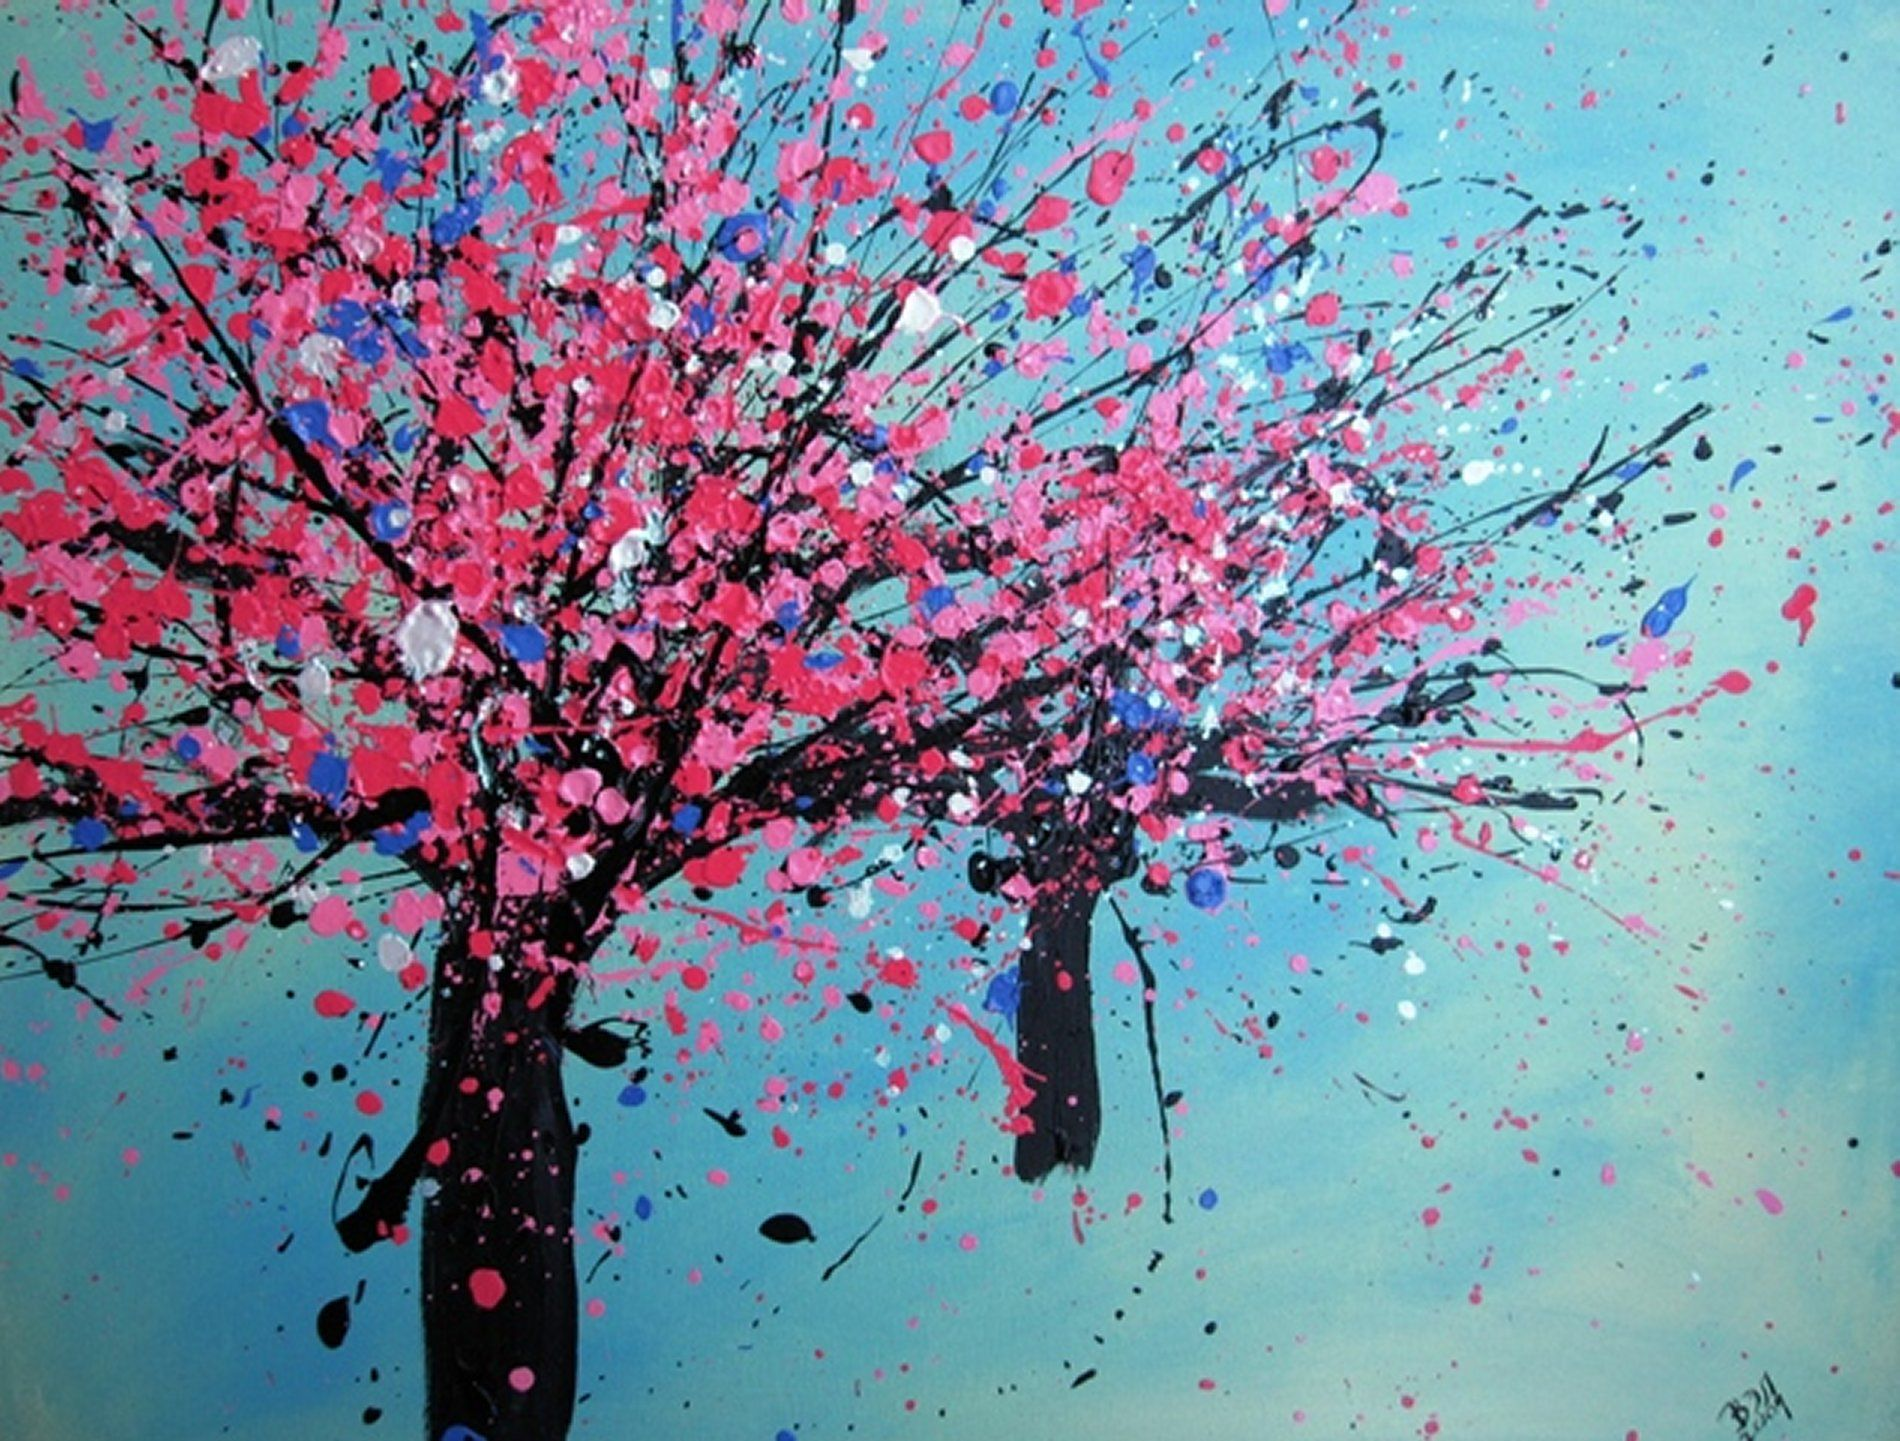 Hd Tree Painting Wallpaper Free -80809 Draw Paint Inspire Create In 2019